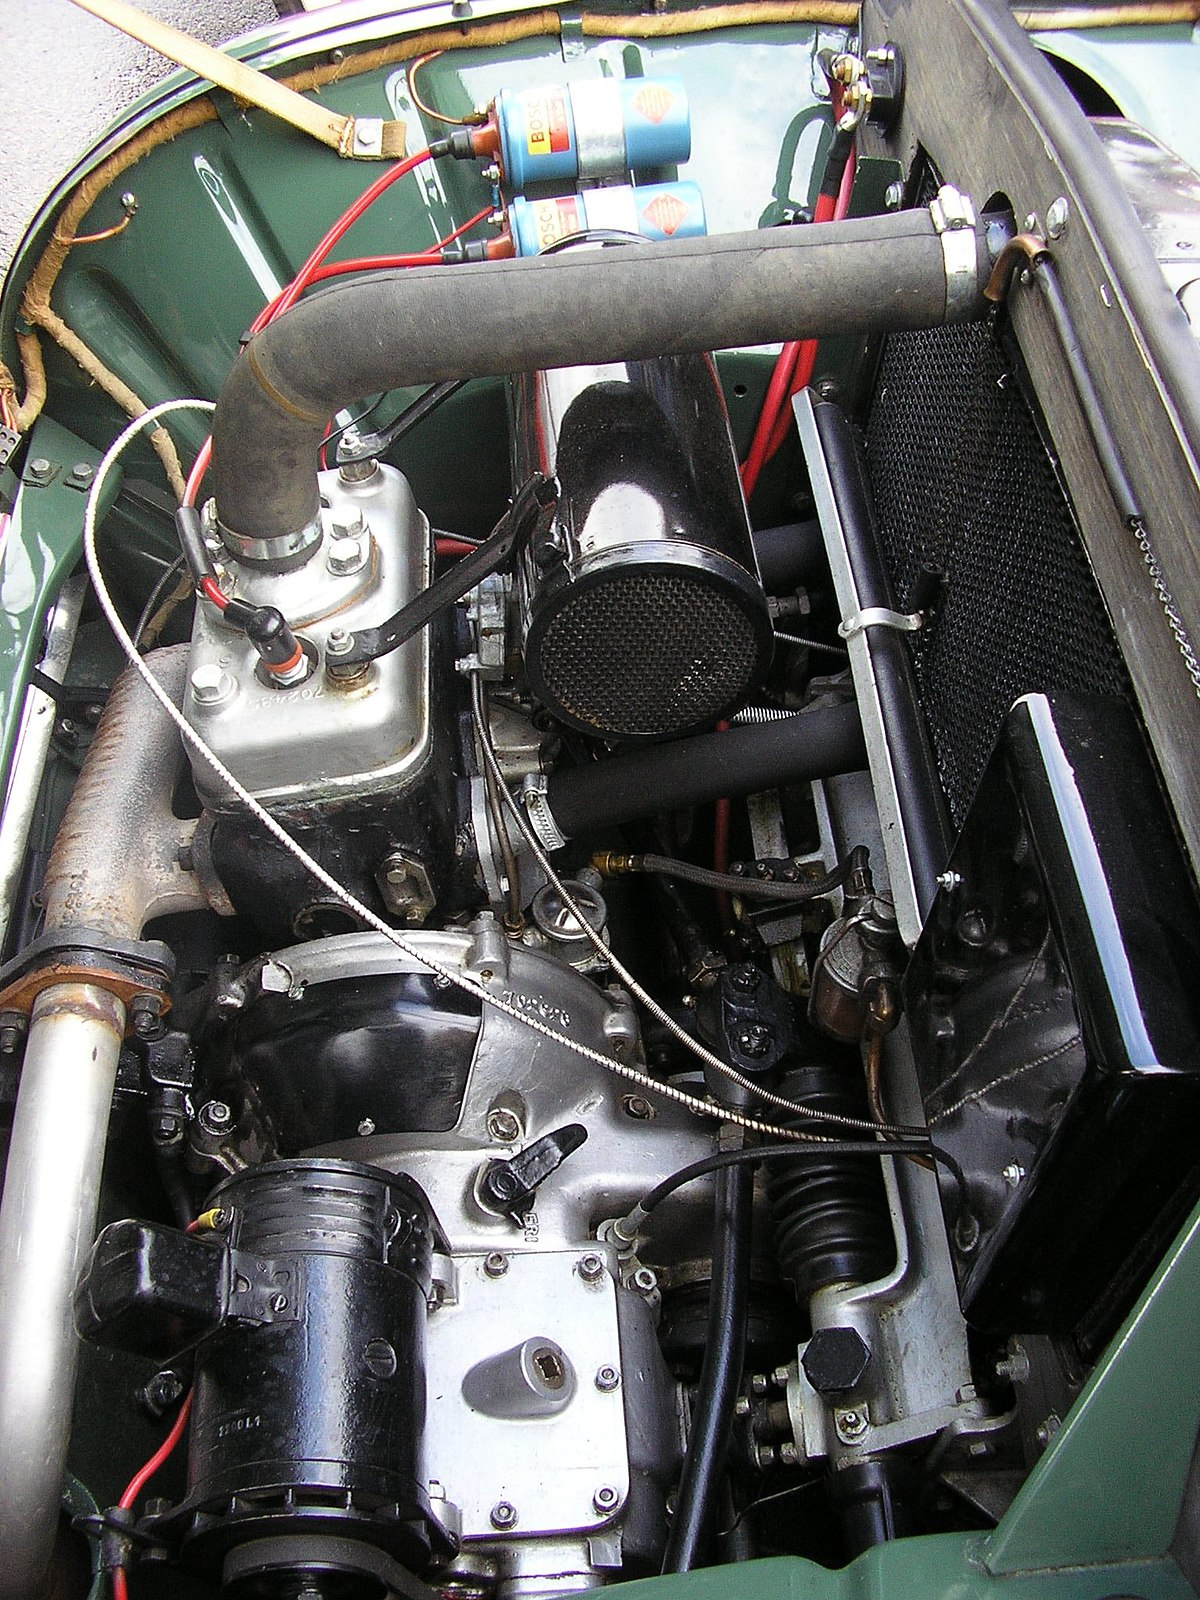 96 ford ranger fuse diagram john deere g tractor for sale saab two-stroke - wikipedia